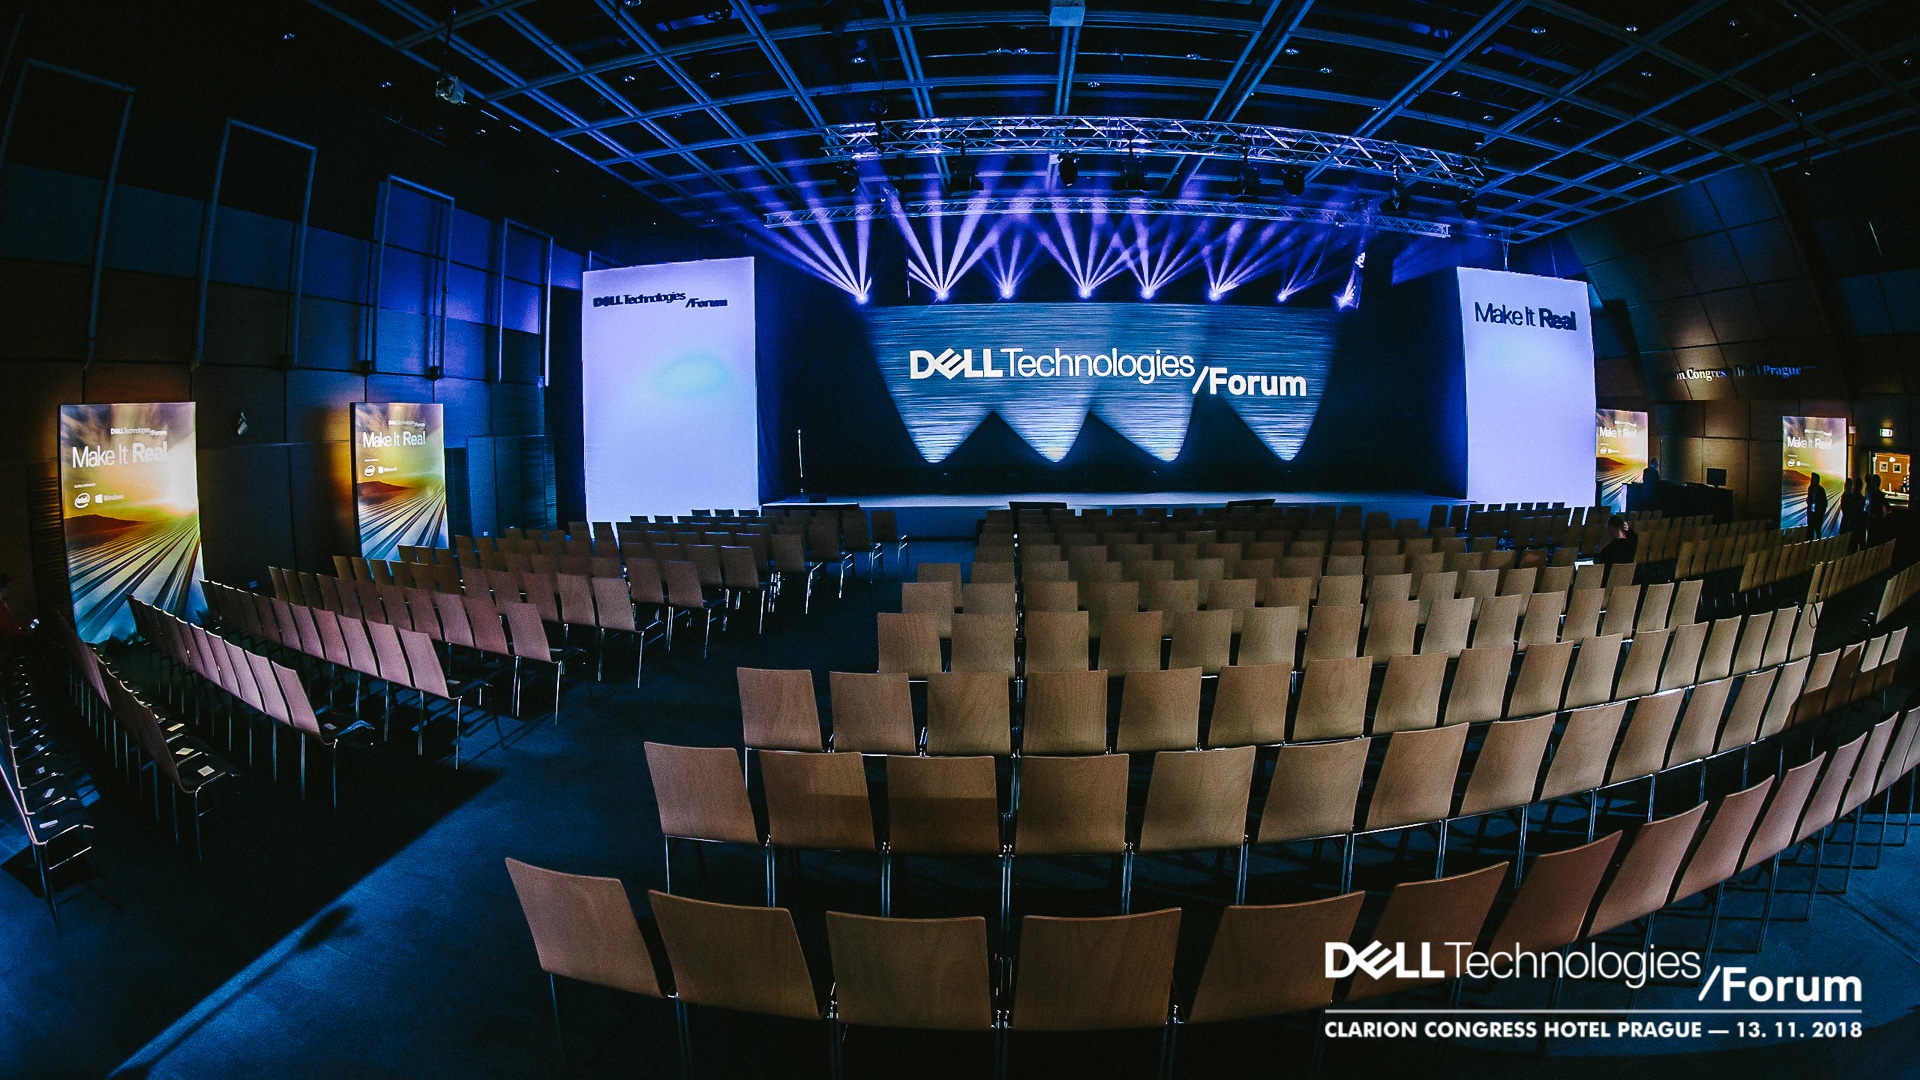 Dell Technologies Forum